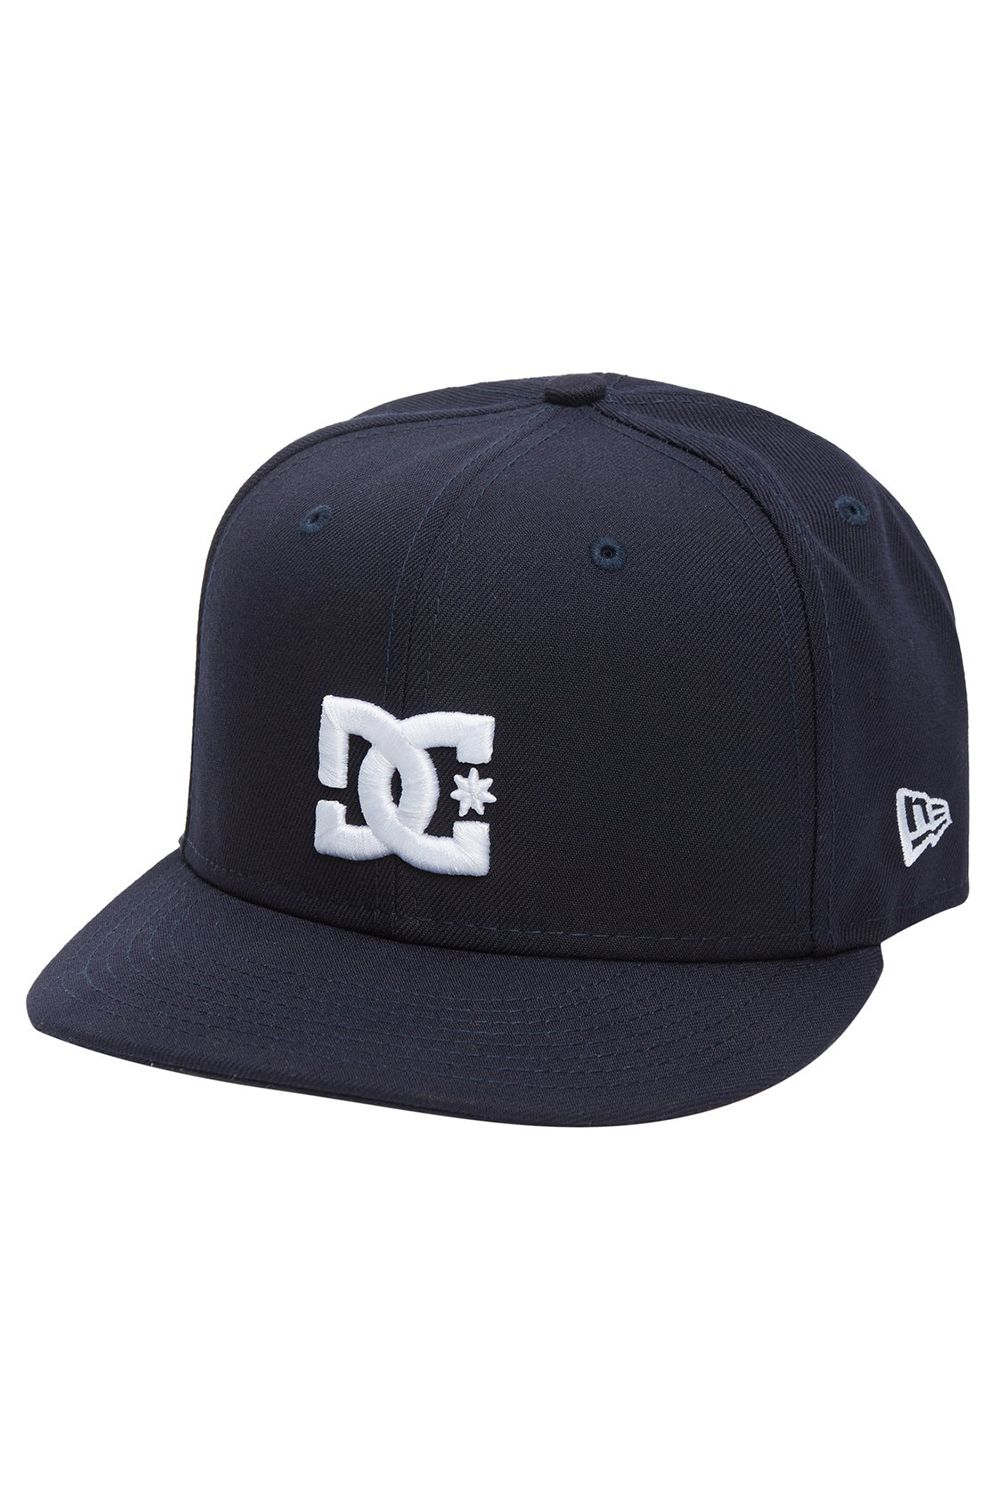 Bone DC Shoes EMPIRE FIELDER Black Iris